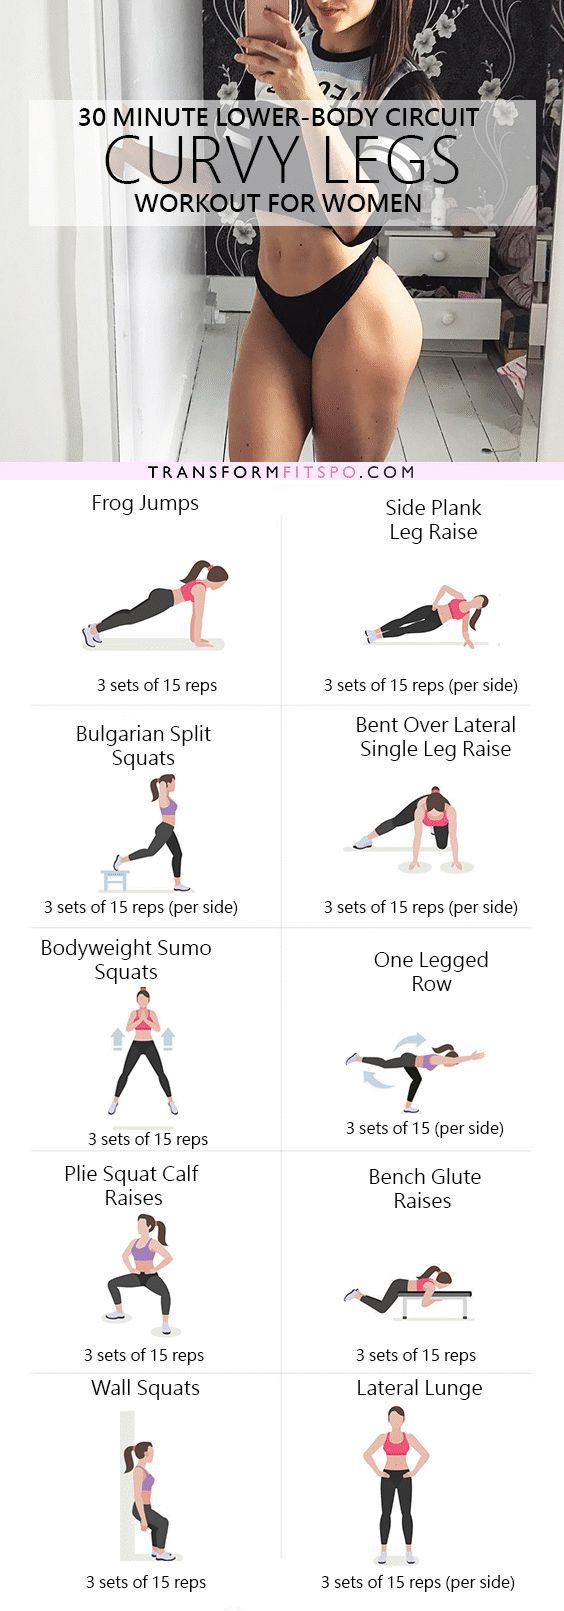 Repin and share if this workout quickly gave you the toned, sexy legs and booty you wanted! Read the post for the full workout.